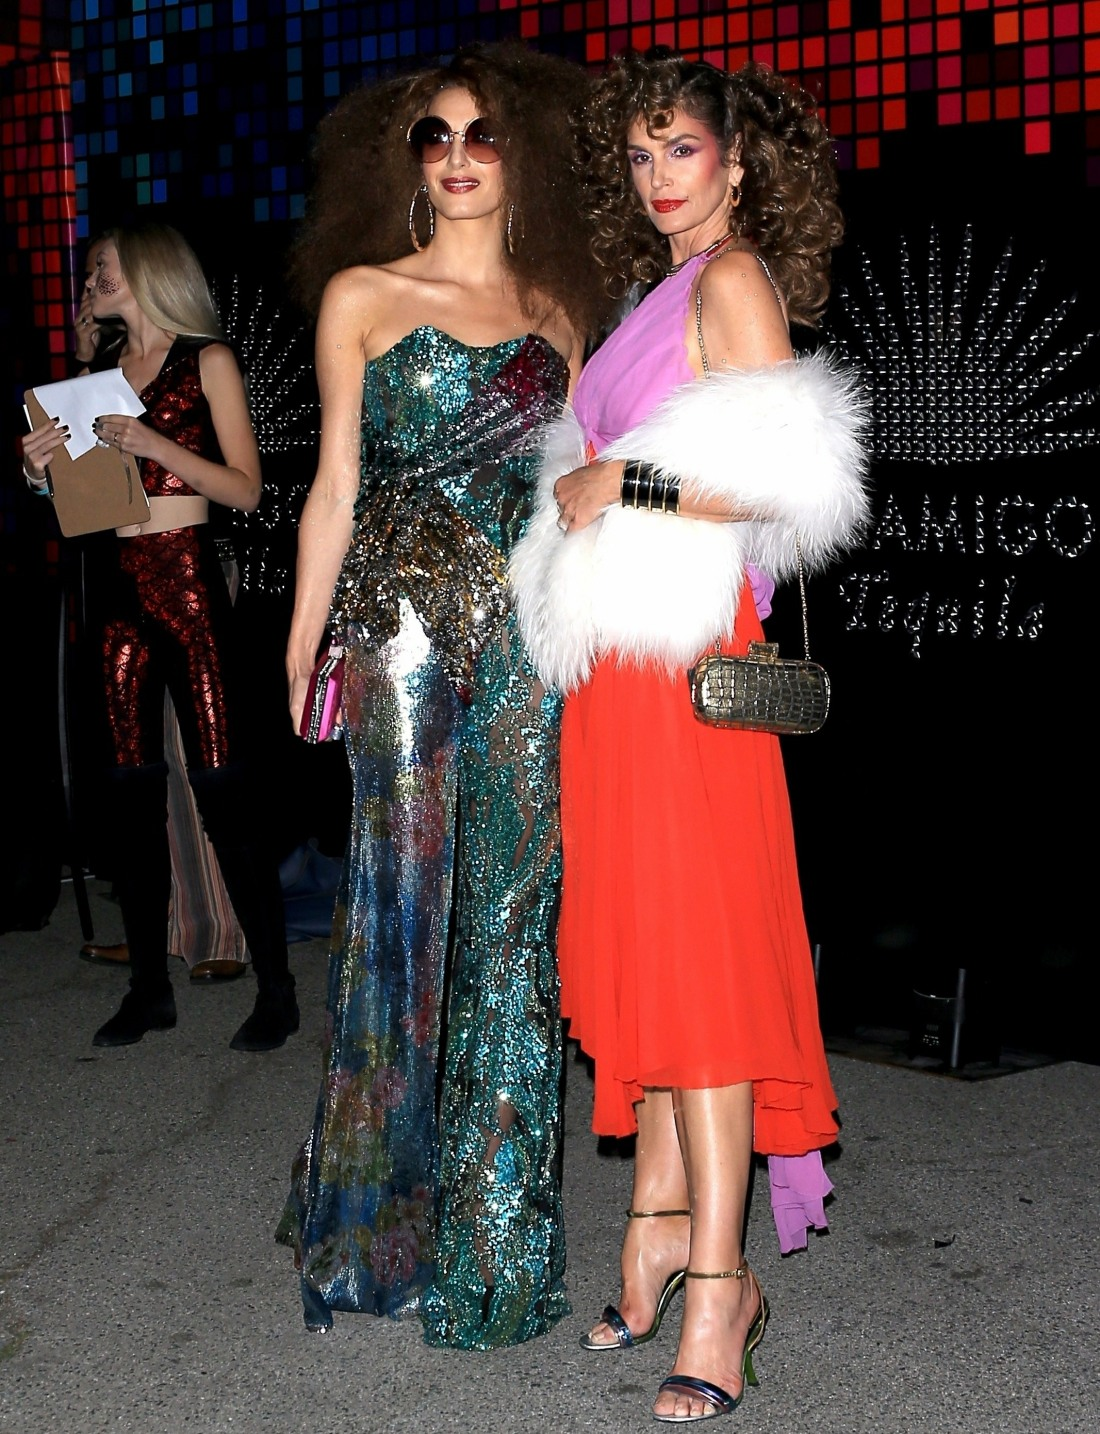 Amal Clooney and Cindy Crawford rewind the clock to the 70's at the Casamigos Event